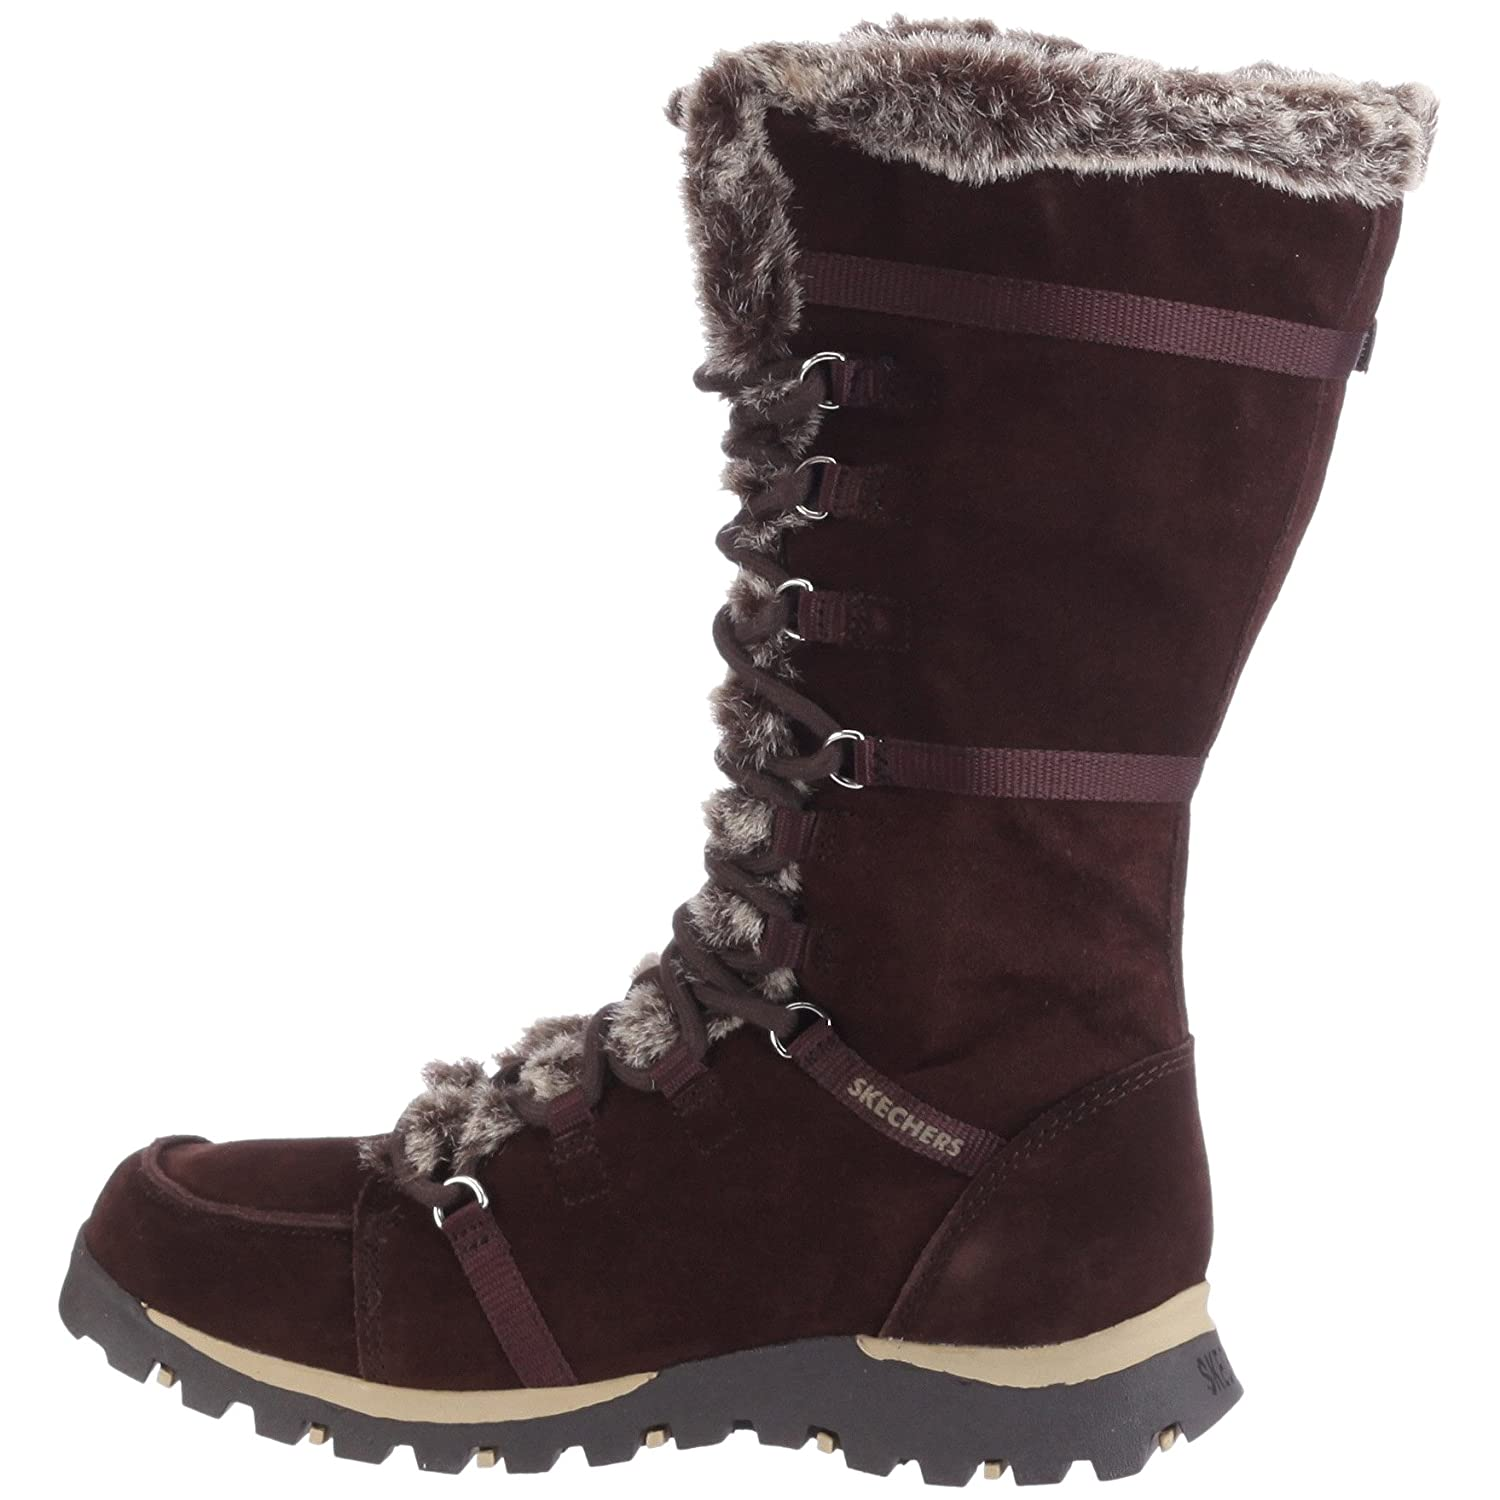 Skechers Women's Grand Jams Unlimited Boot B000H0ZYEK 10 B(M) US|Brown